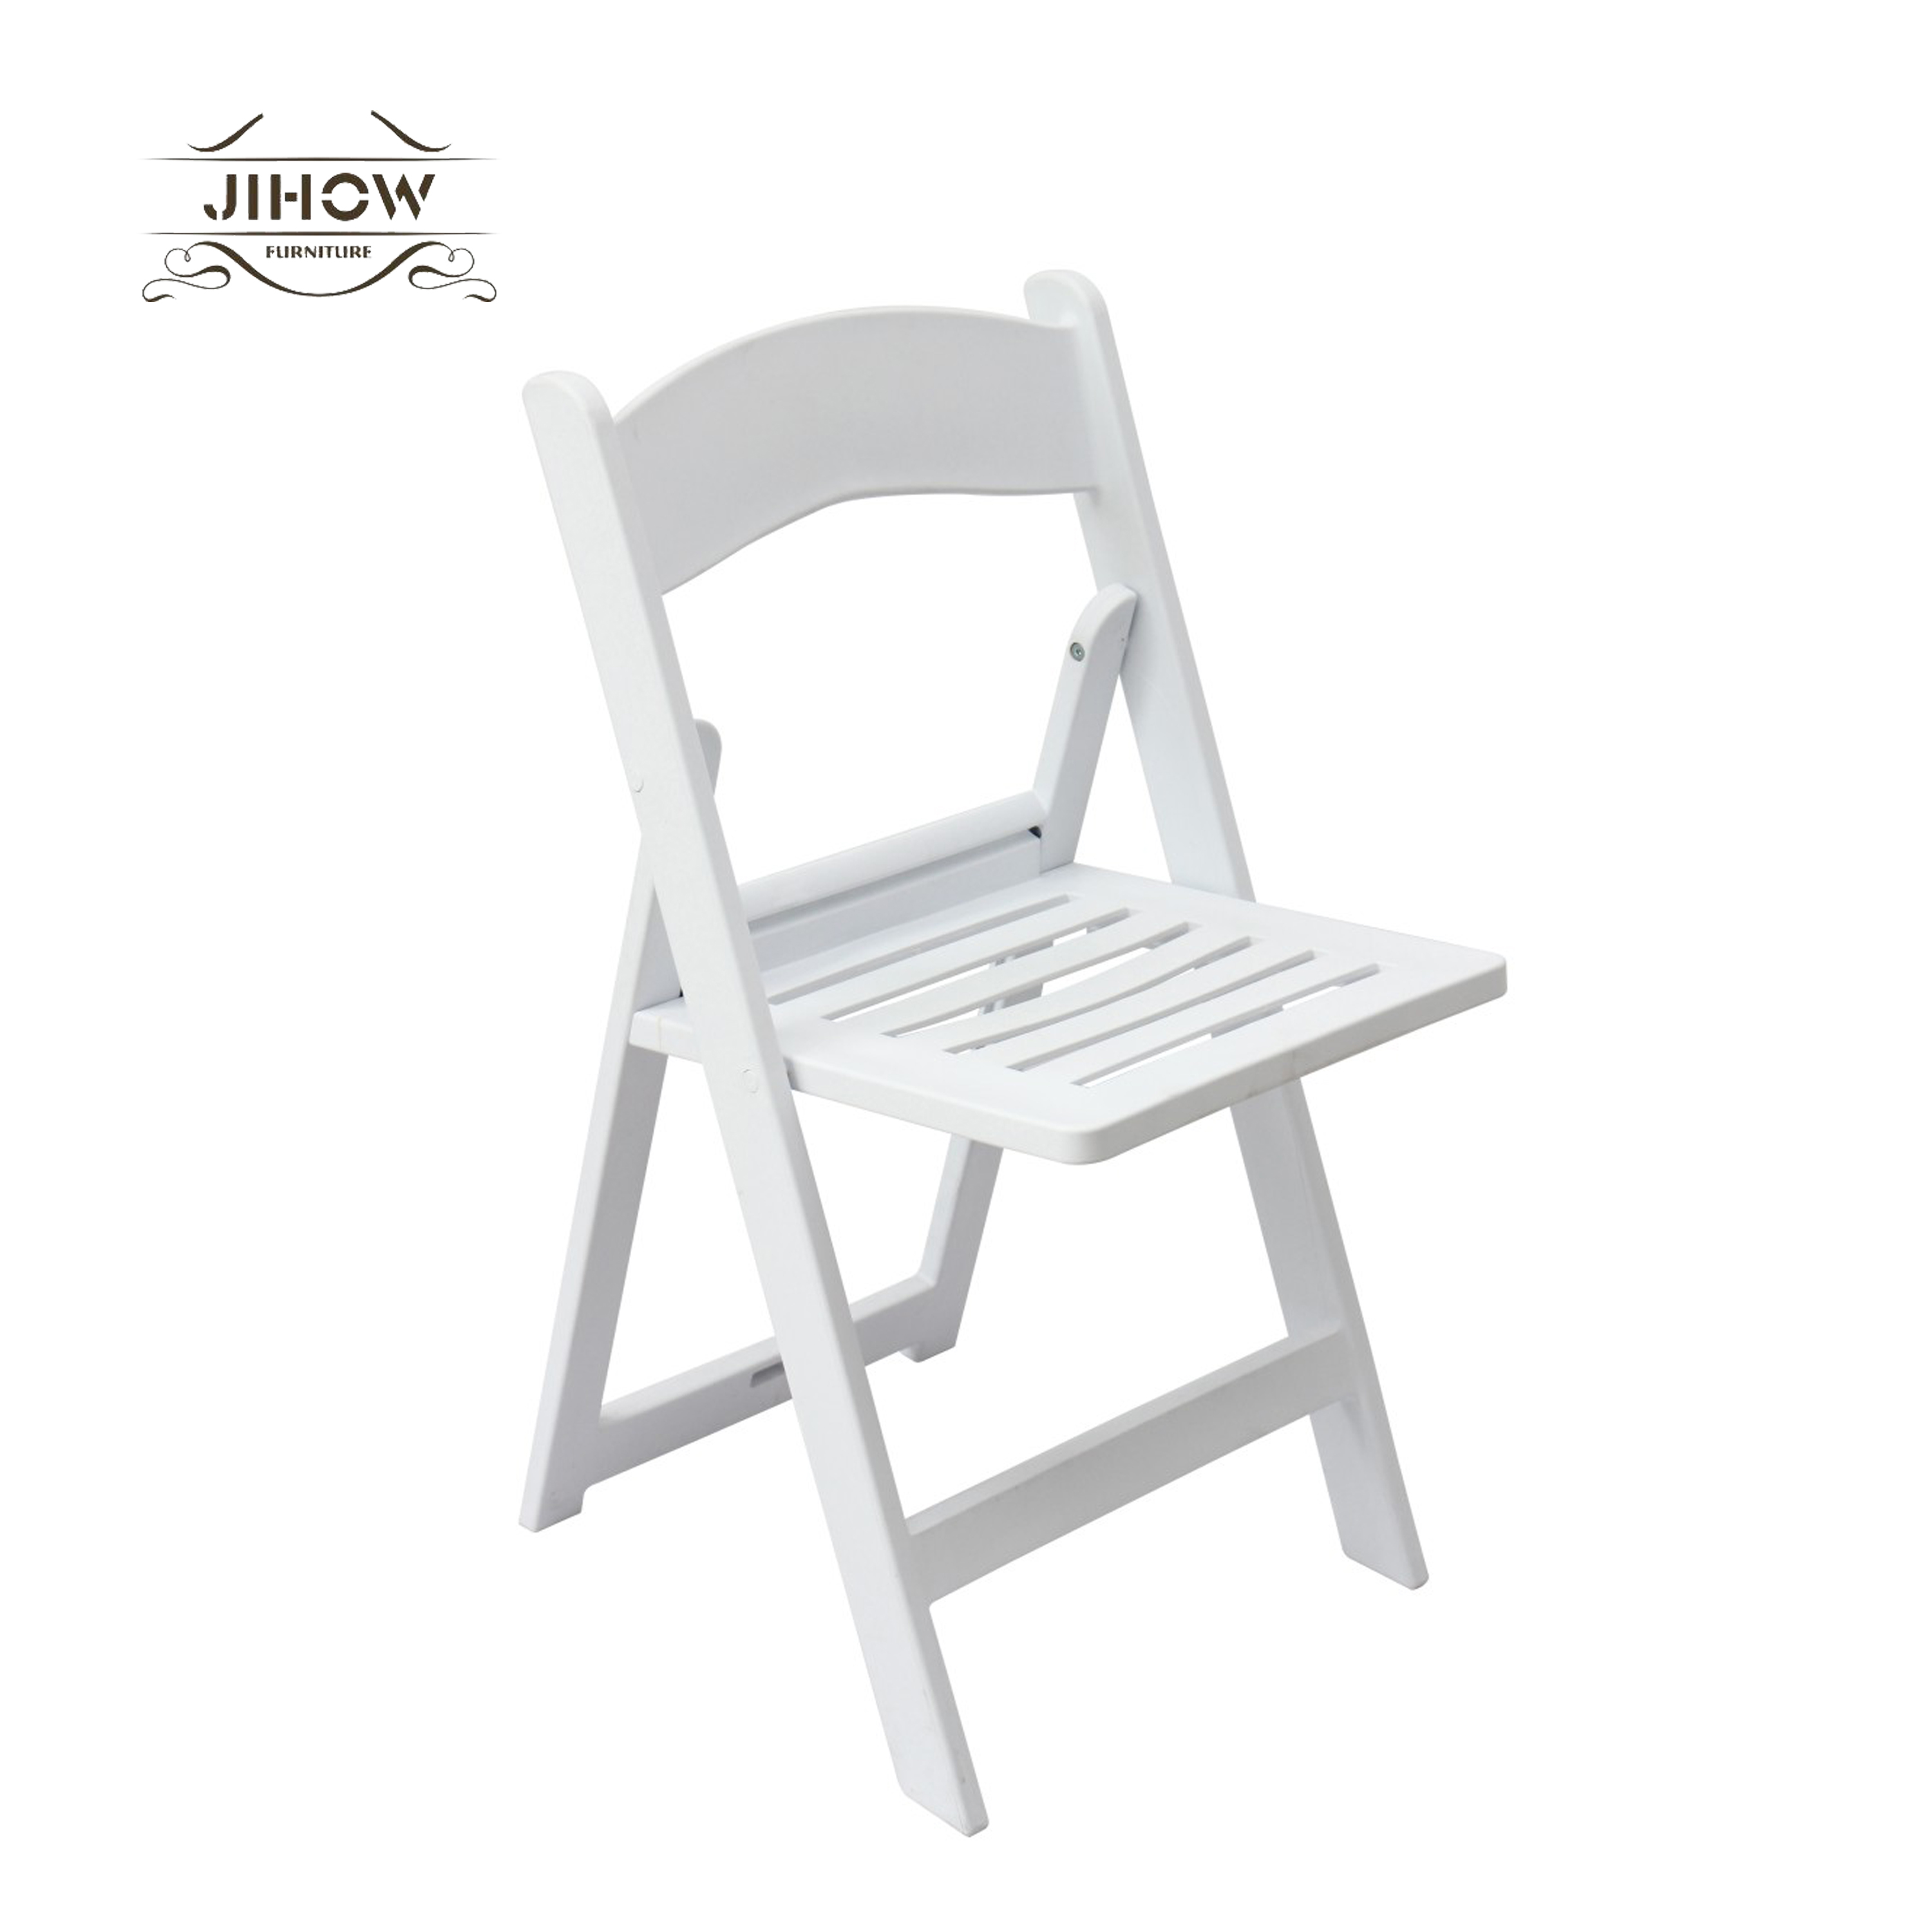 Wooden Slat Folding Chairs.Factory Direct Resin Wood Slat Folding Chair For Garden Use Buy Slat Folding Chair Garden Chair Slat Wood Slat Folding Chair Product On Alibaba Com